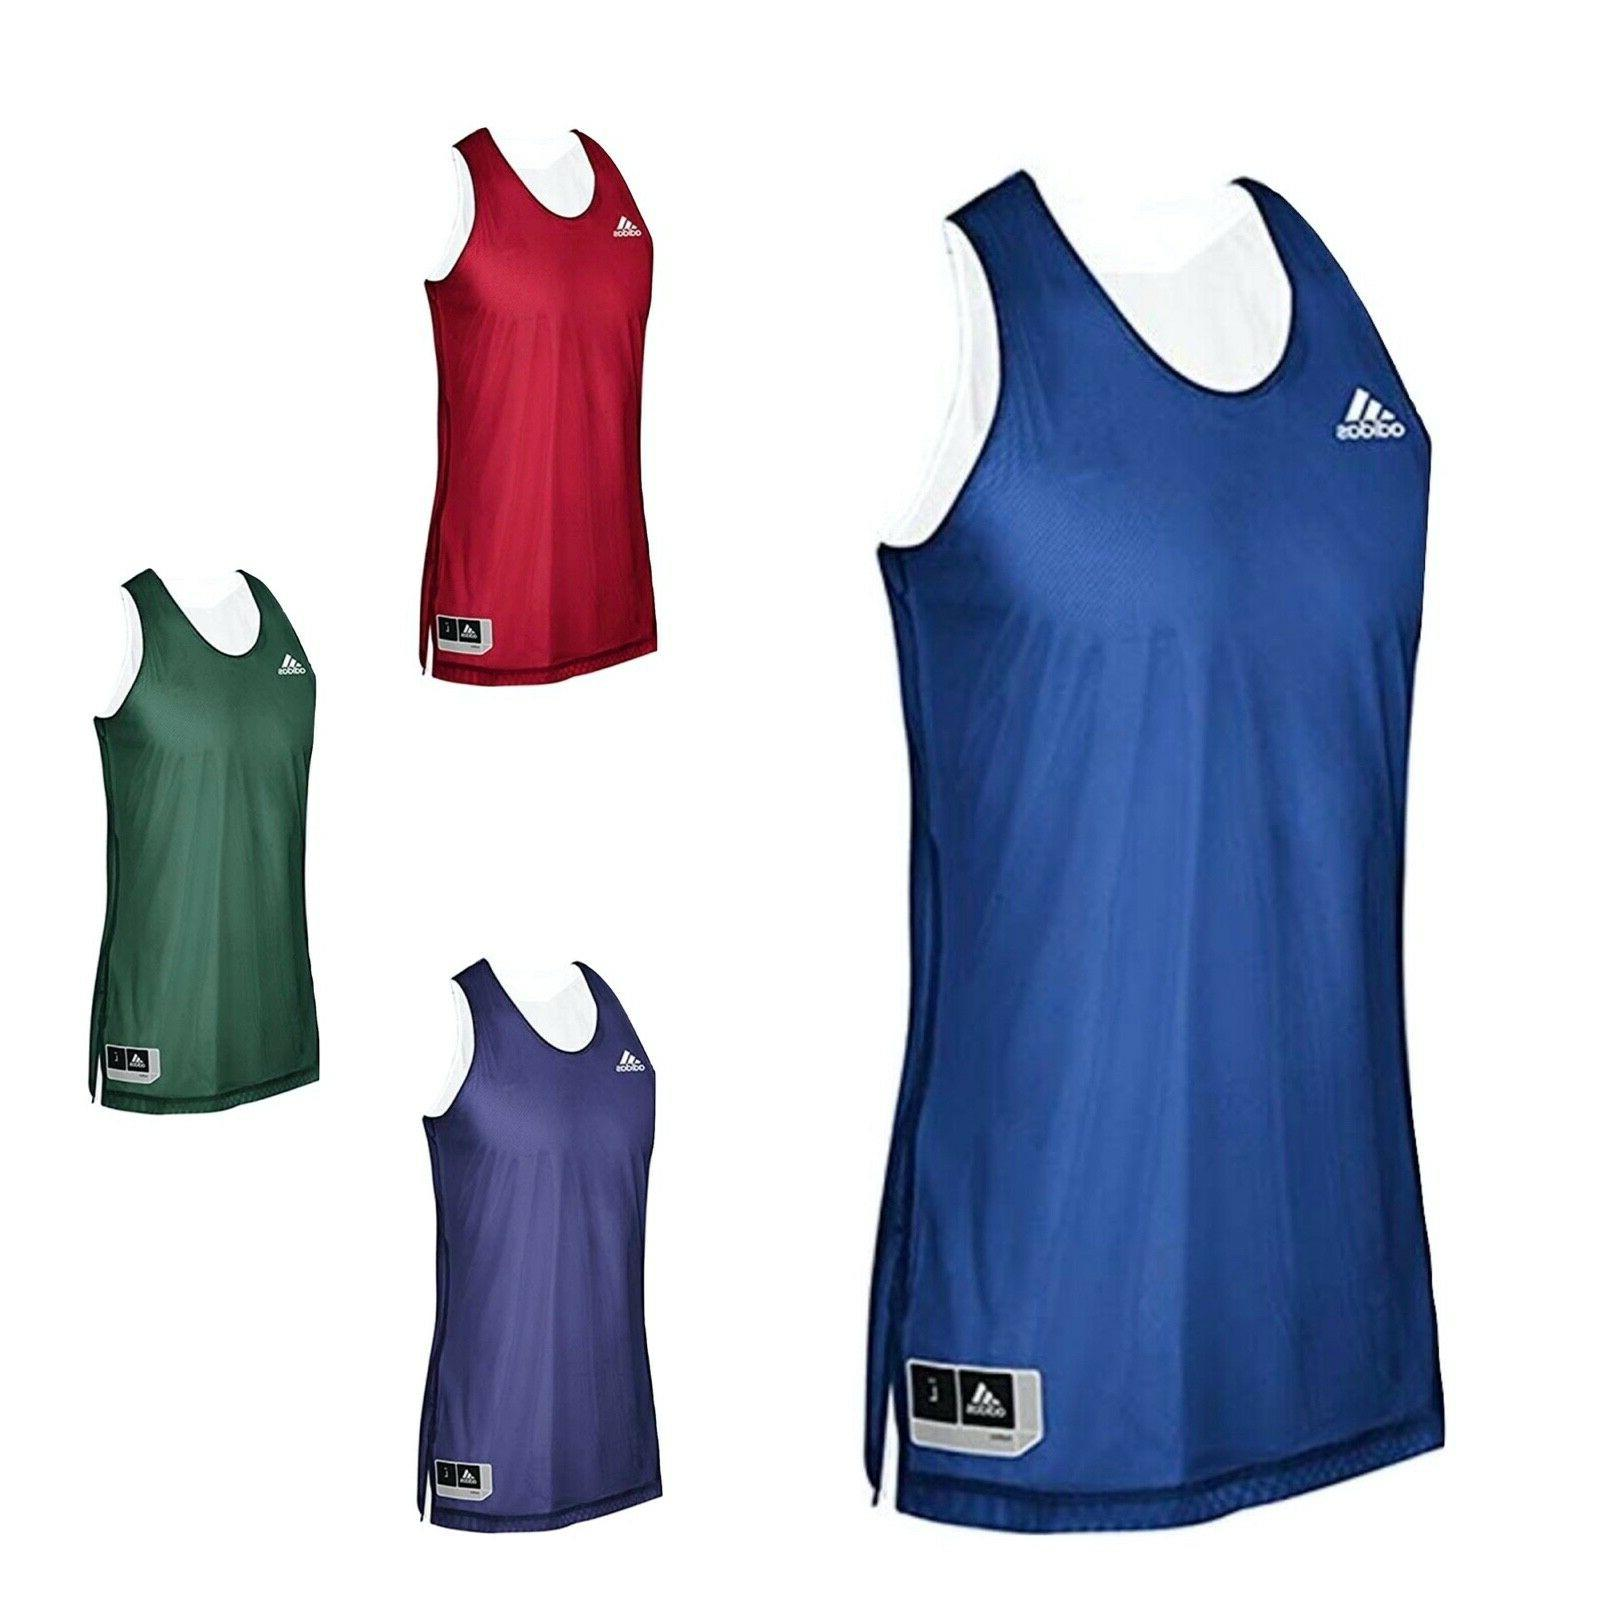 mens basketball jersey explosive reversible performance jers